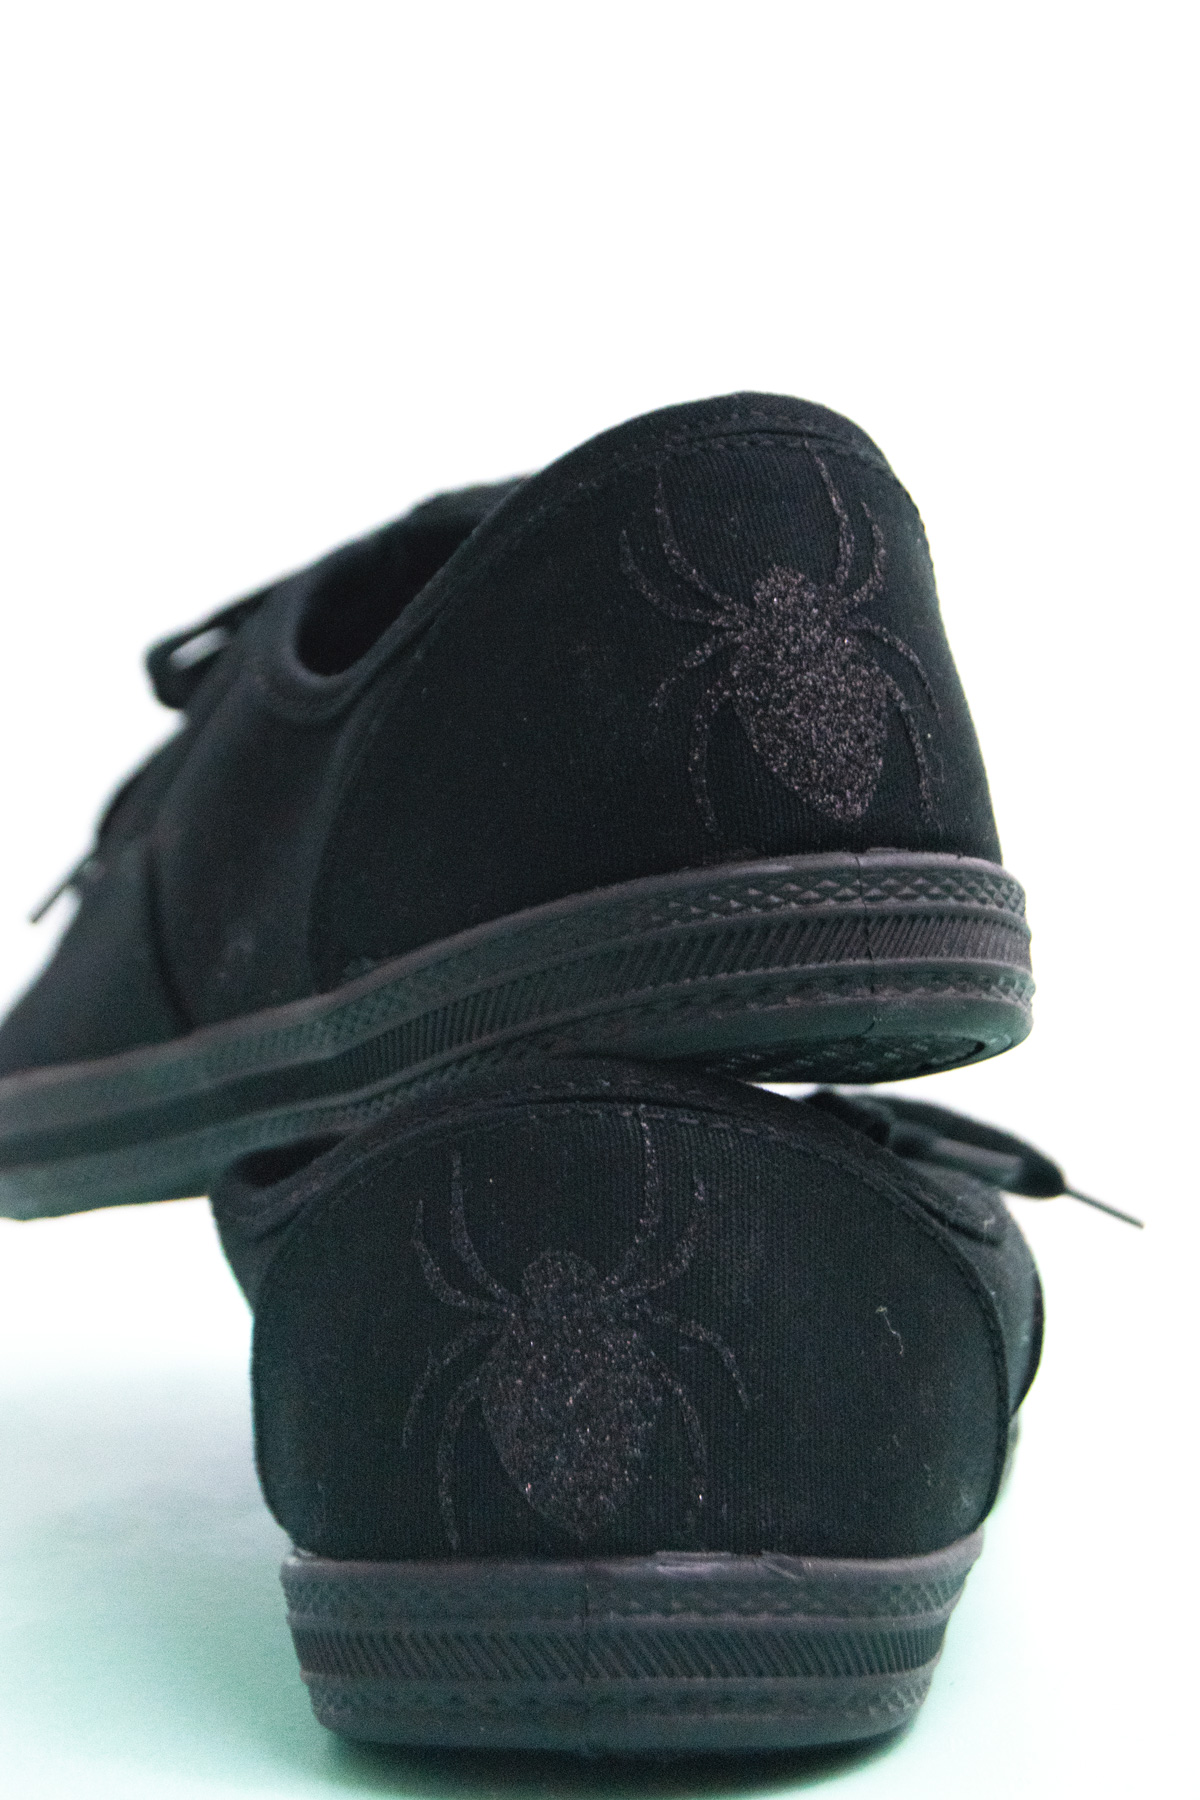 spider vinyl ironed on to shoes